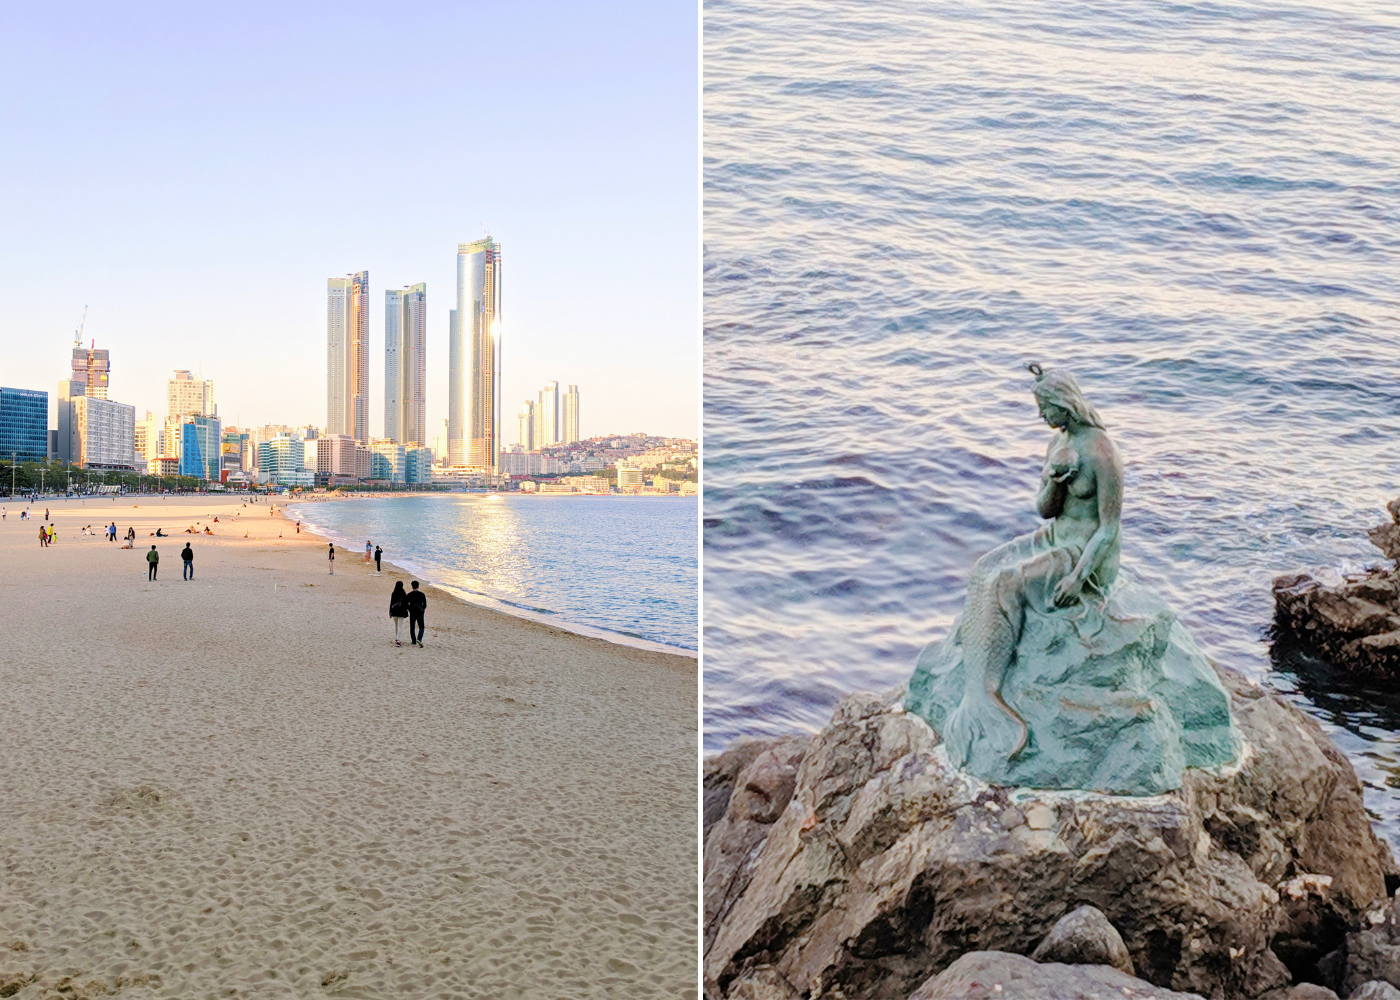 Left: Haeundae Beach, right: Princess Hwangok Statue.